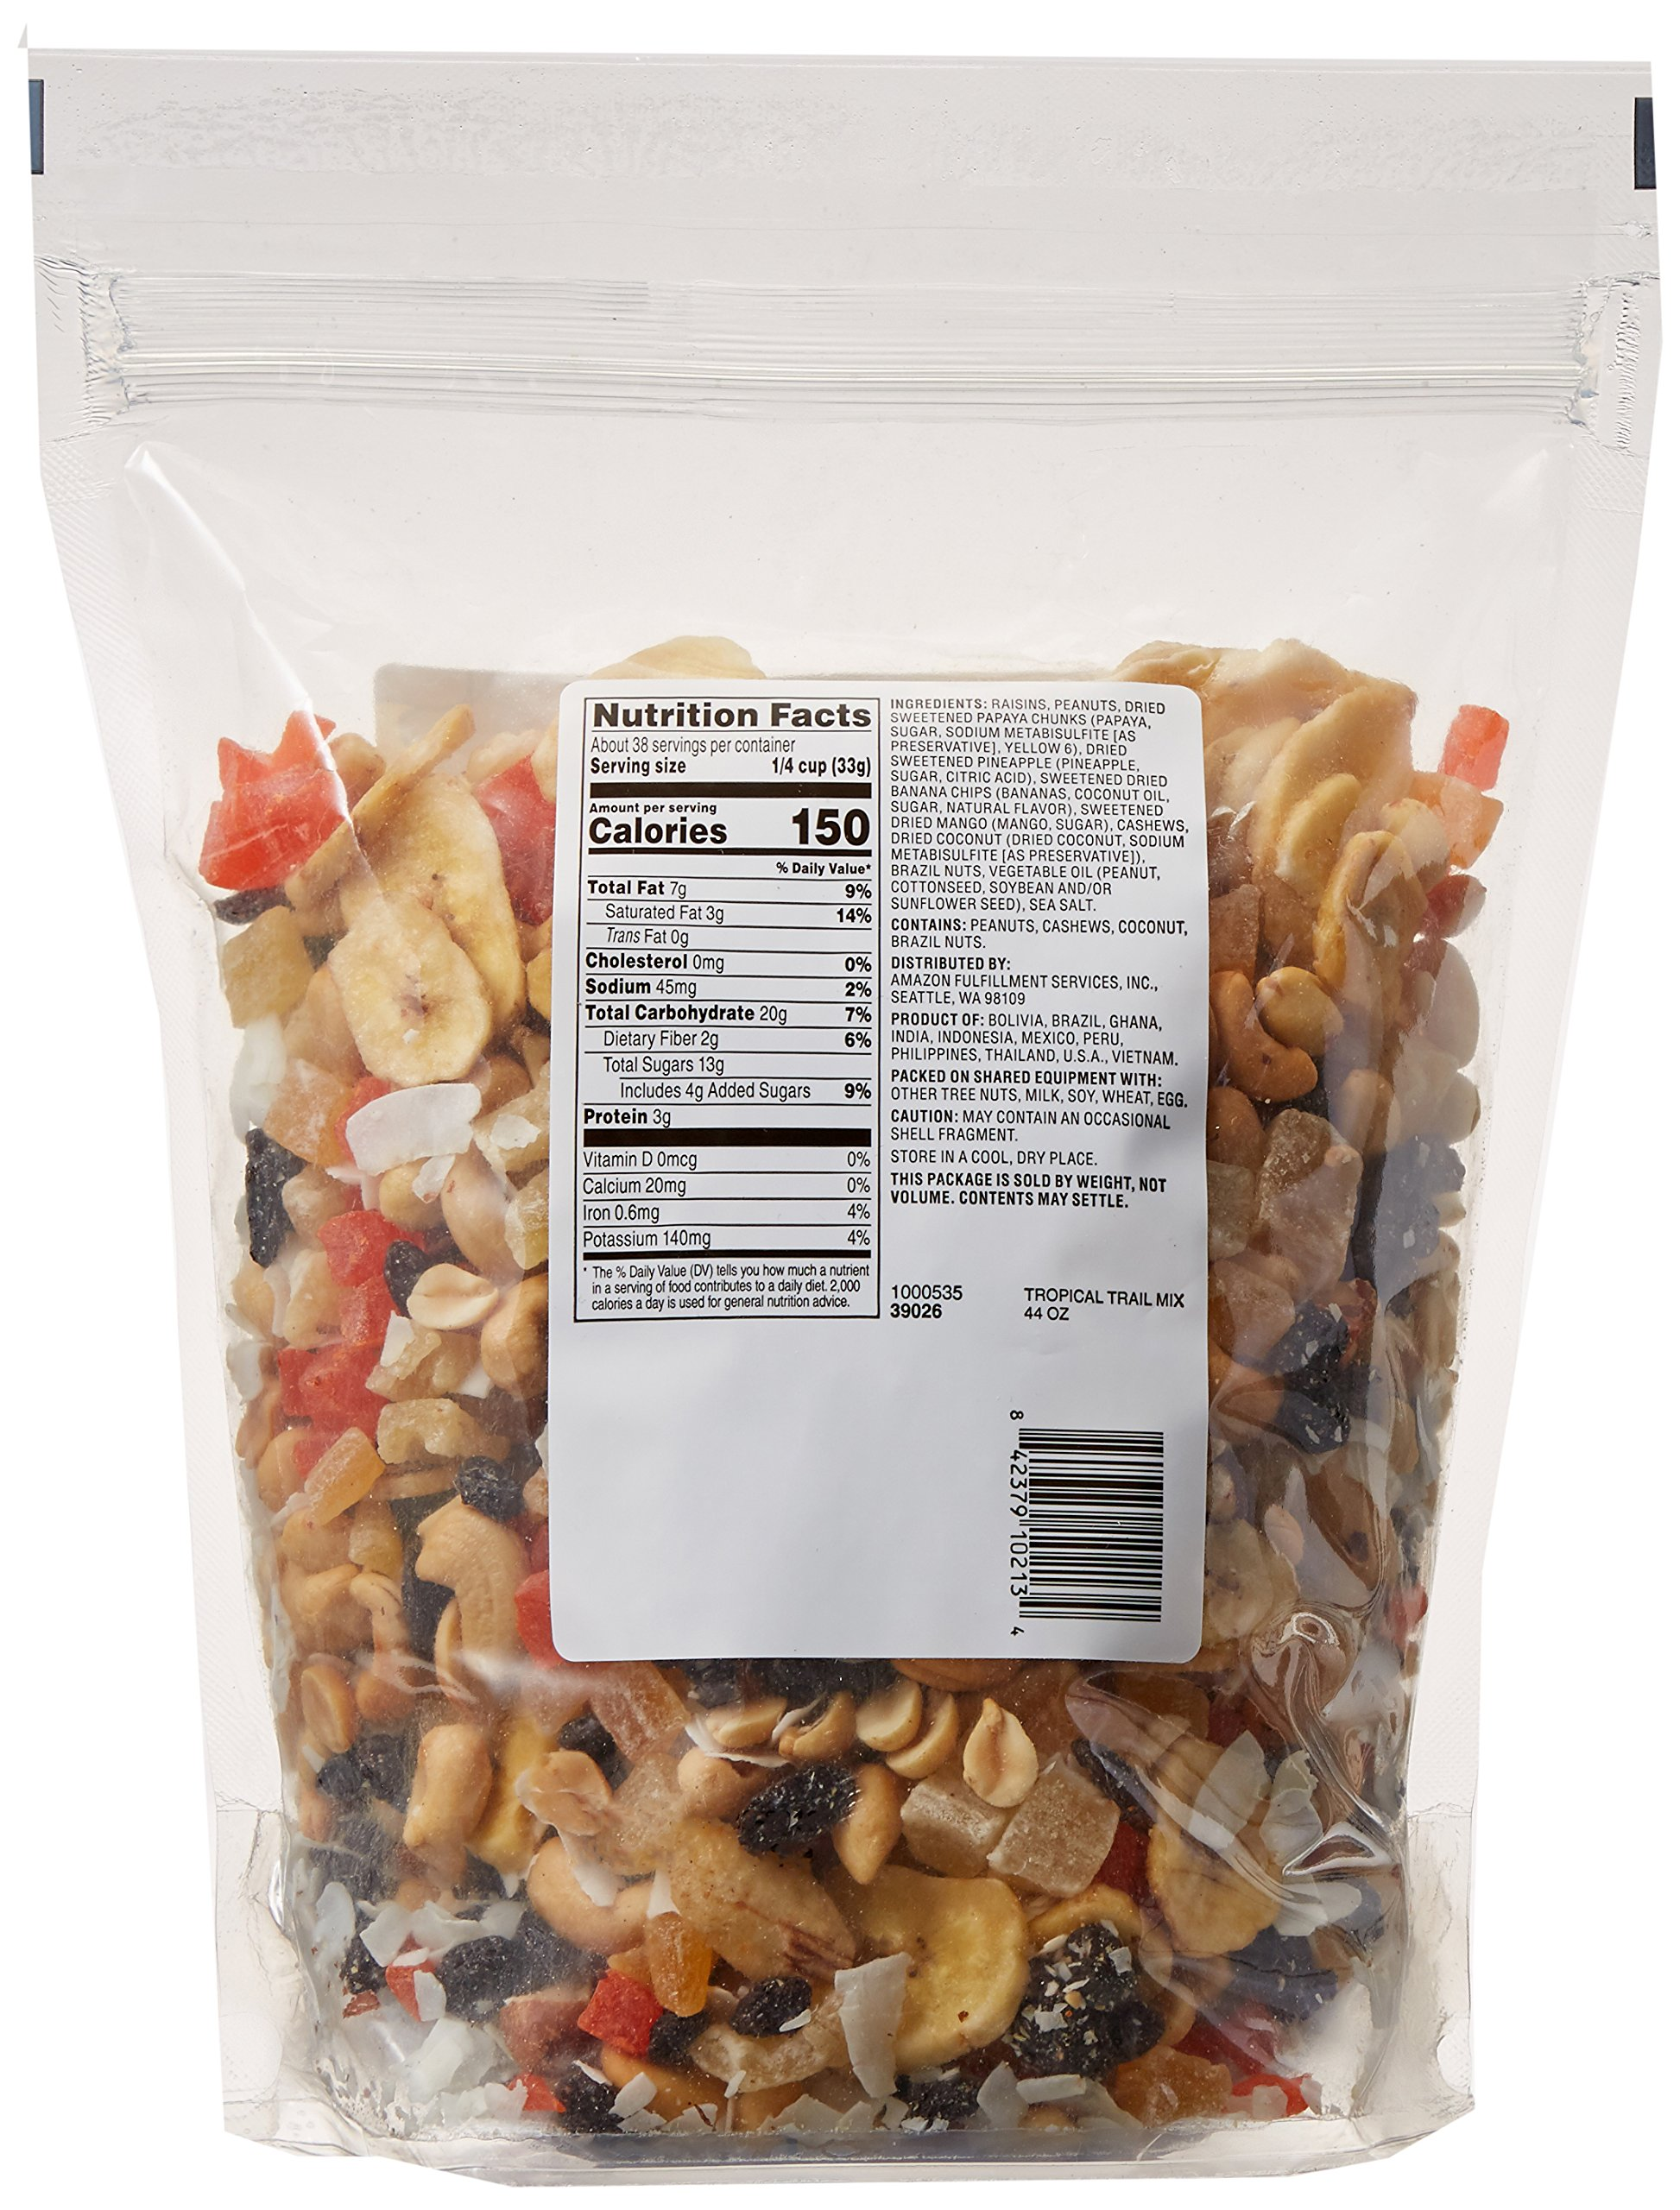 Amazon Brand - Happy Belly Amazon Brand Tropical Trail Mix, 44 ounce by Happy Belly (Image #5)